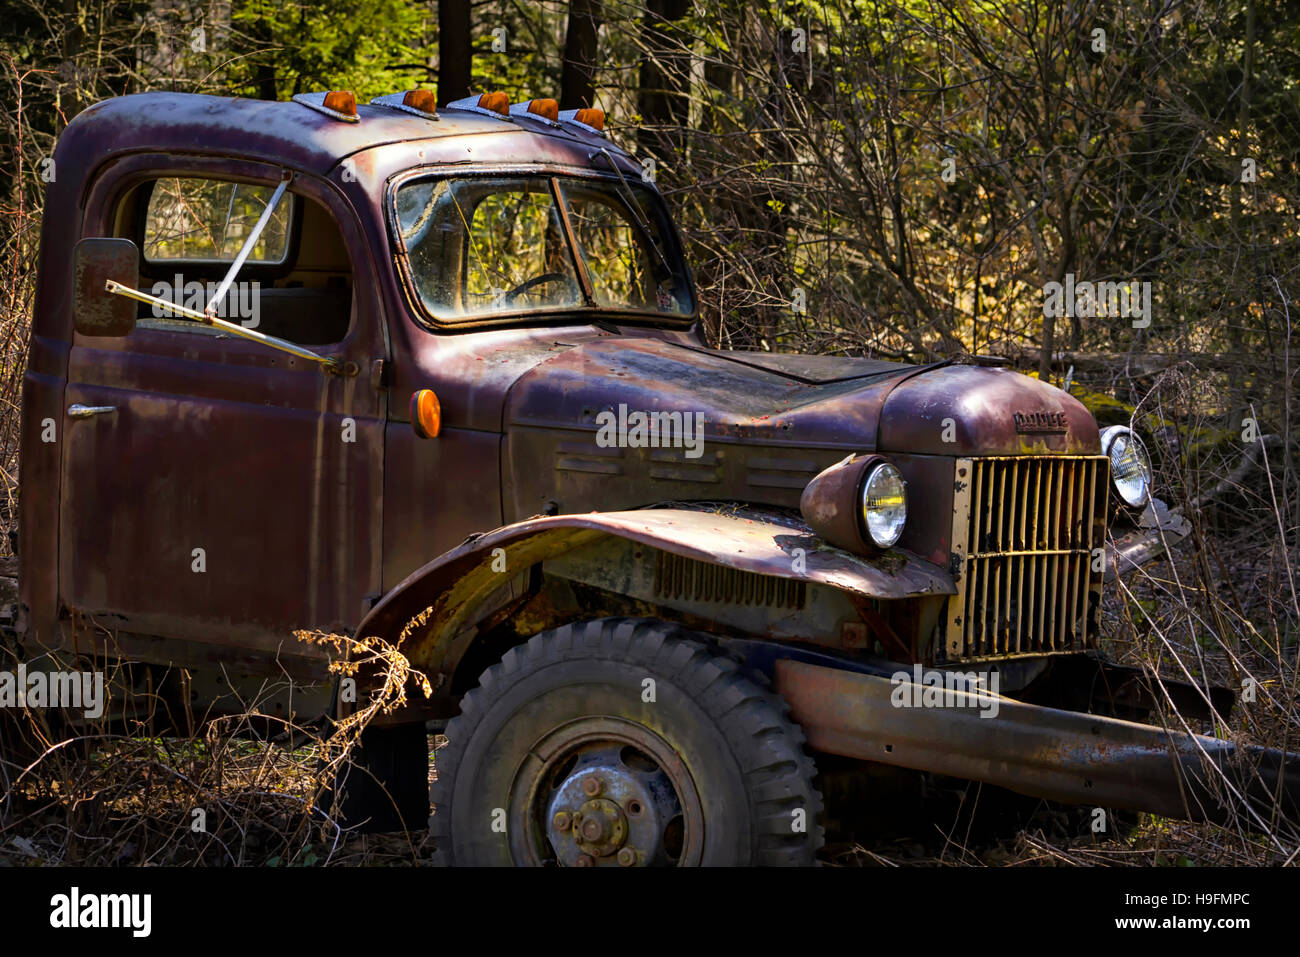 1952 Dodge old pickup truck Stock Photo: 126350068 - Alamy